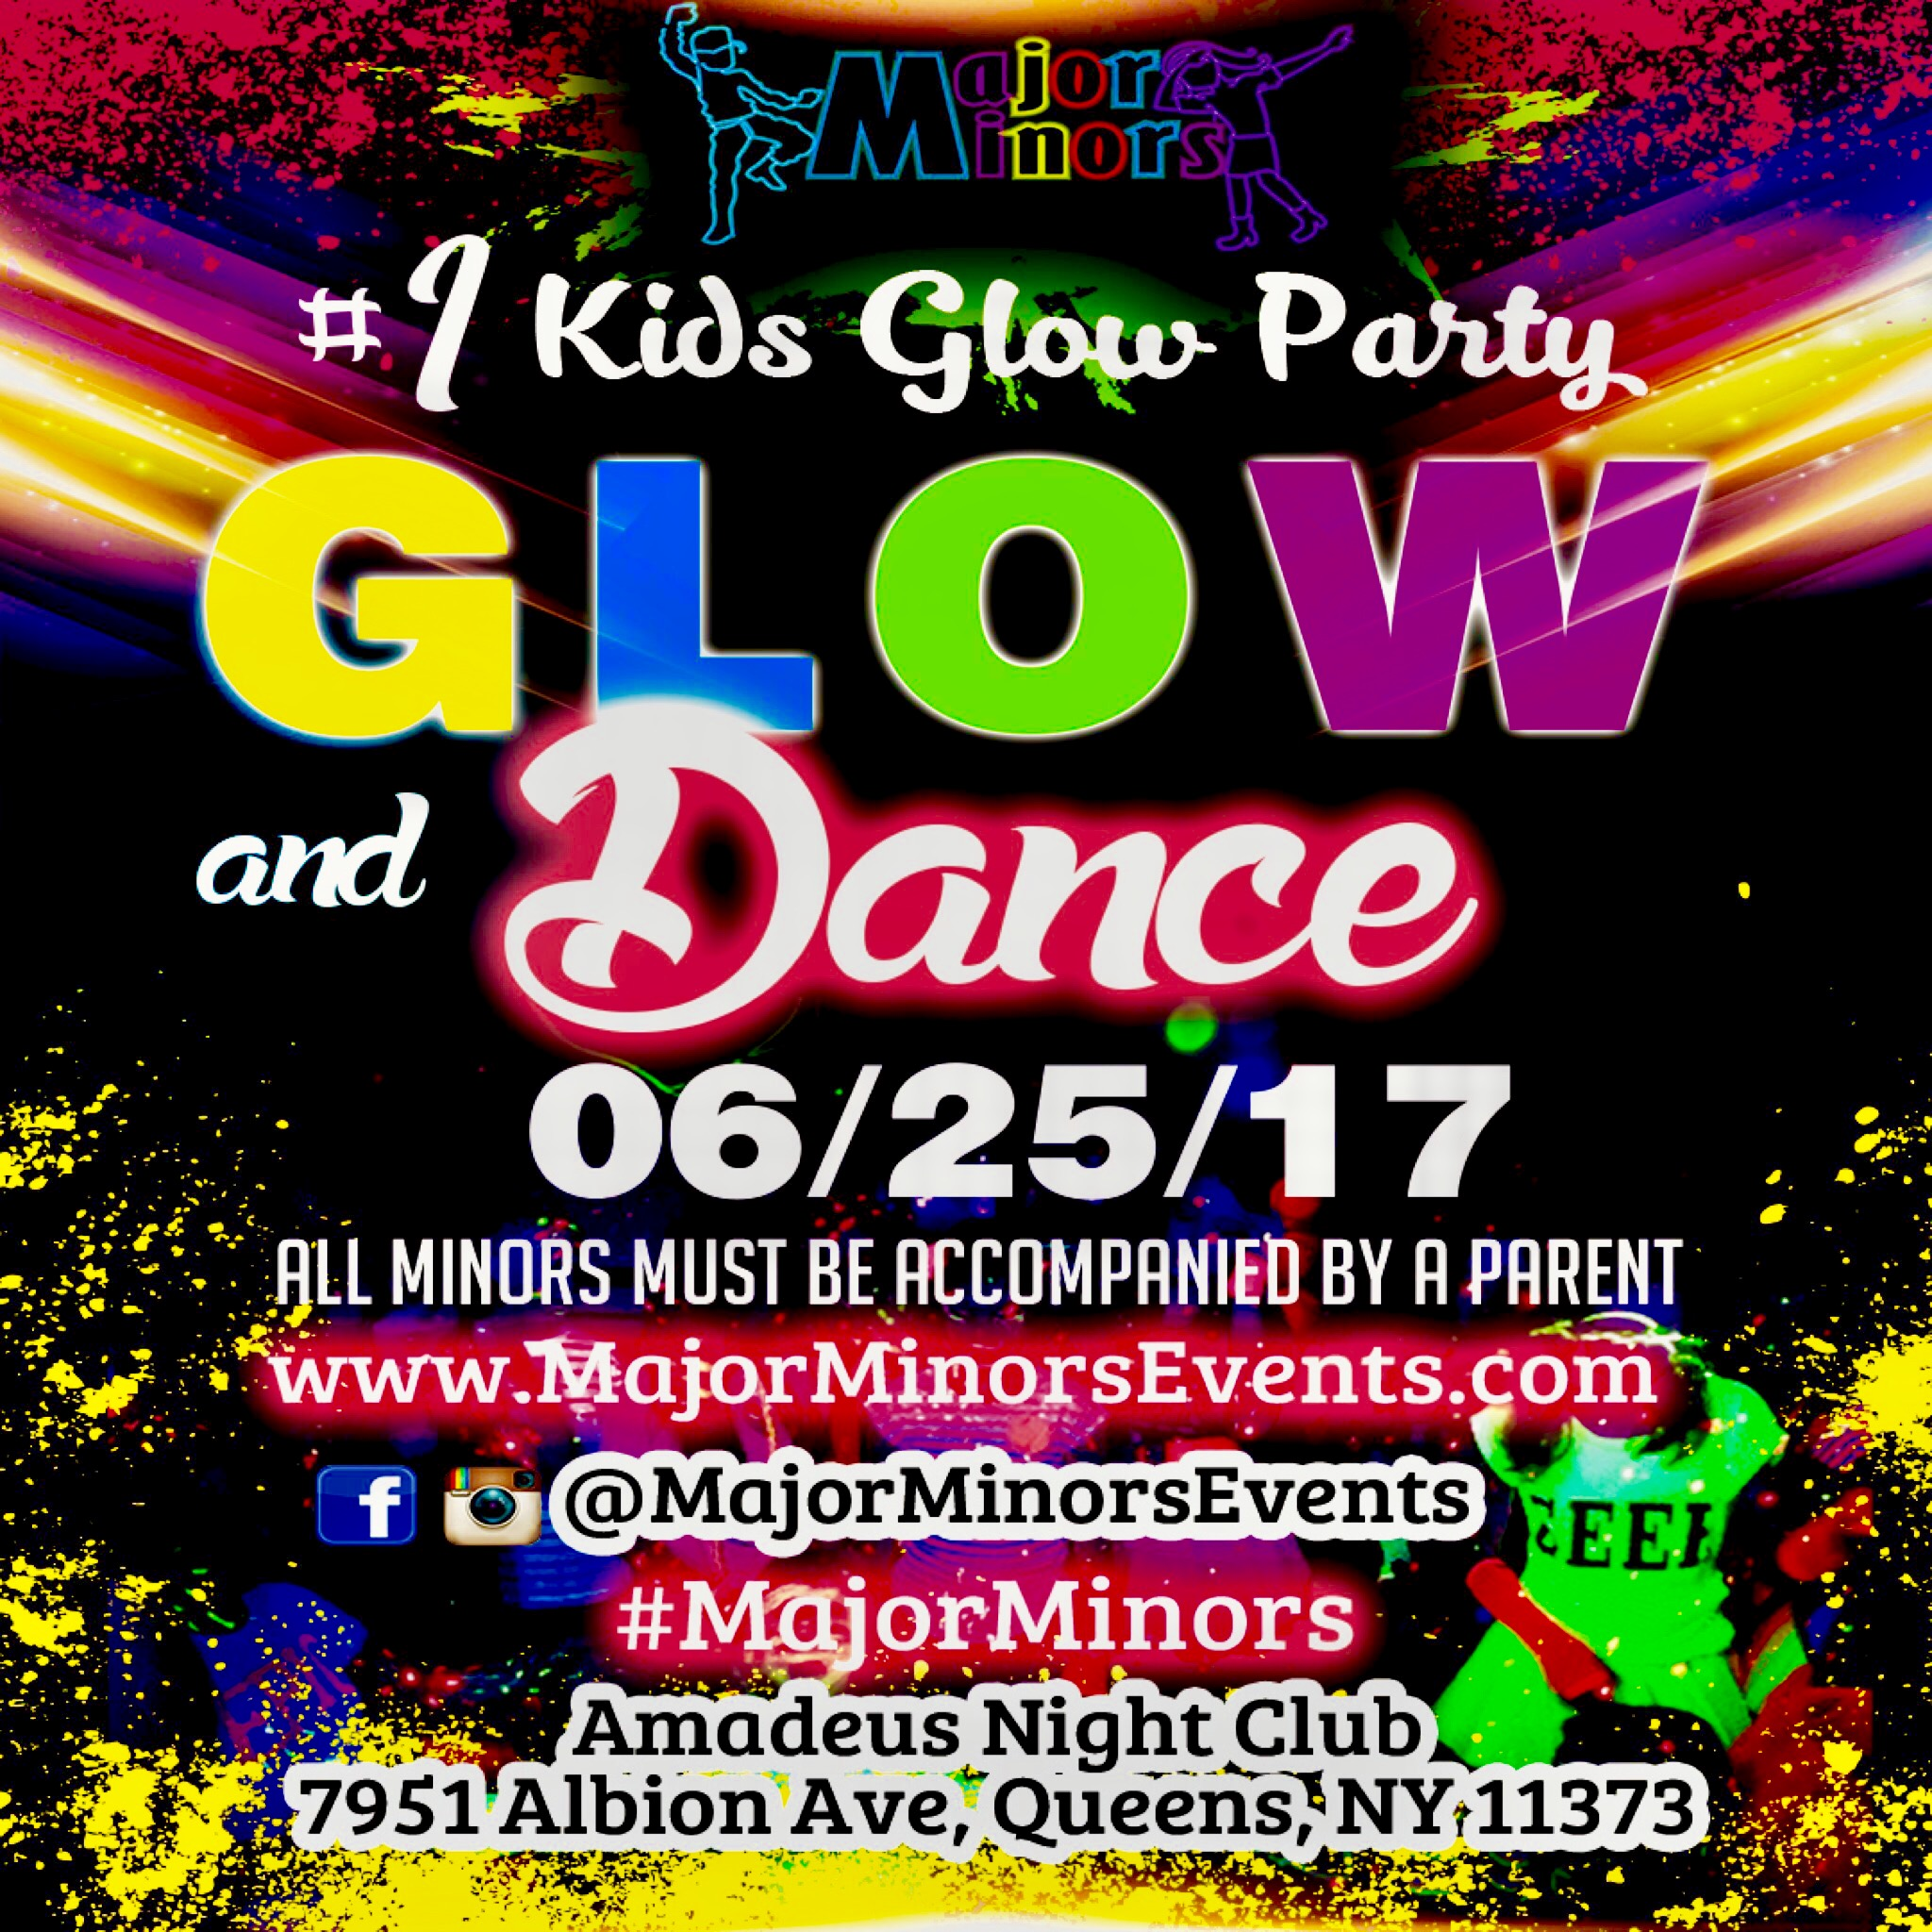 Glow and Dance Kids Party